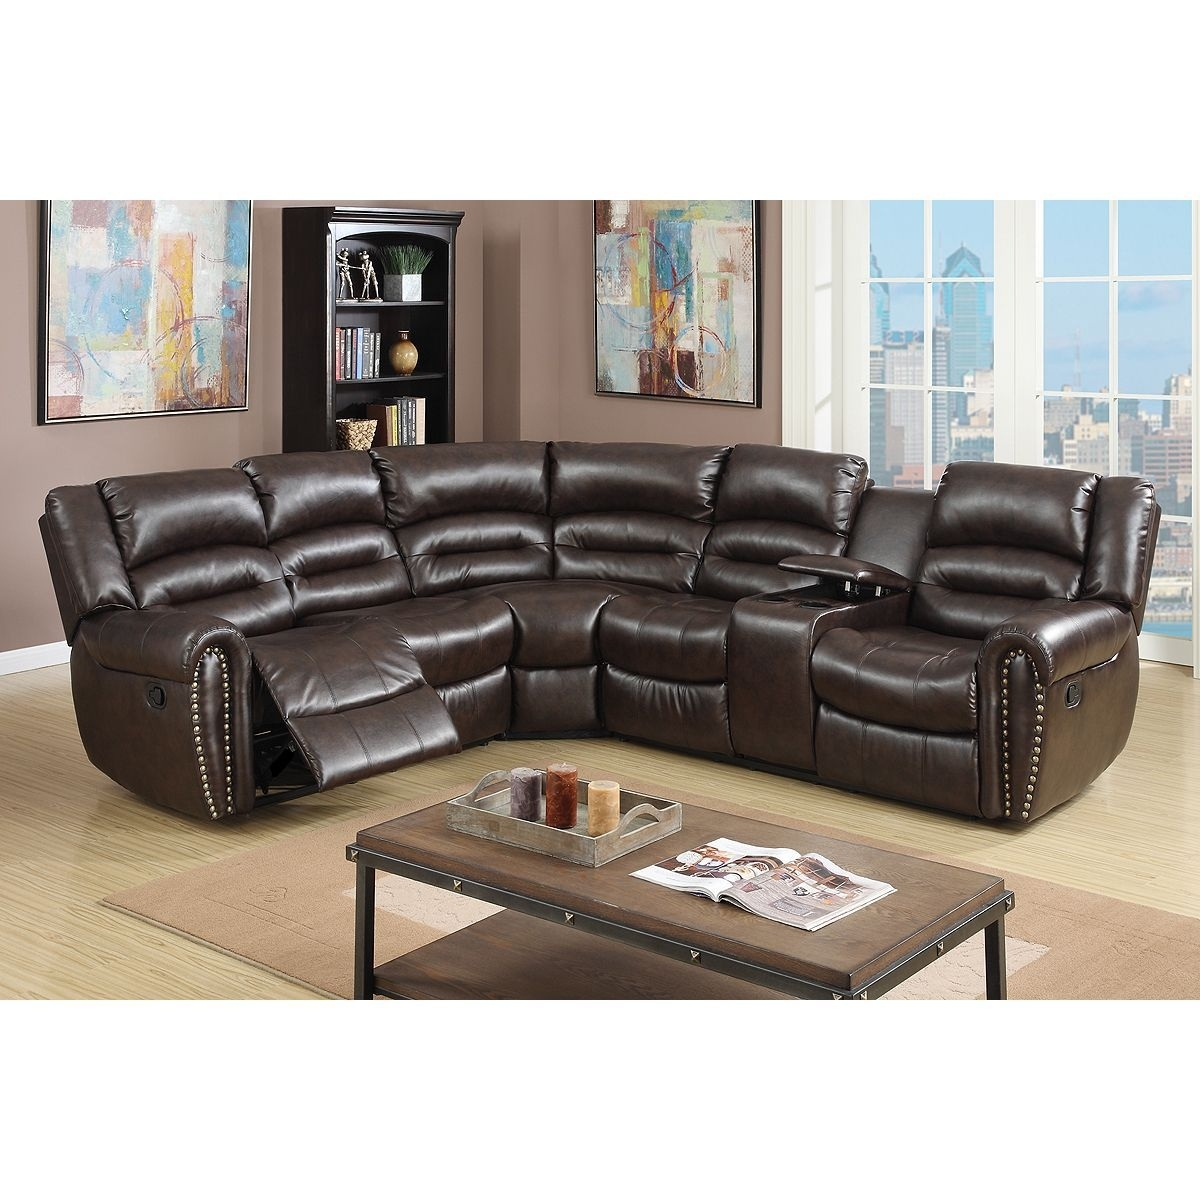 American Eagle Furniture Ek-Lb309-Dc Dark Chocolate Sofa C throughout Tenny Dark Grey 2 Piece Right Facing Chaise Sectionals With 2 Headrest (Image 5 of 30)